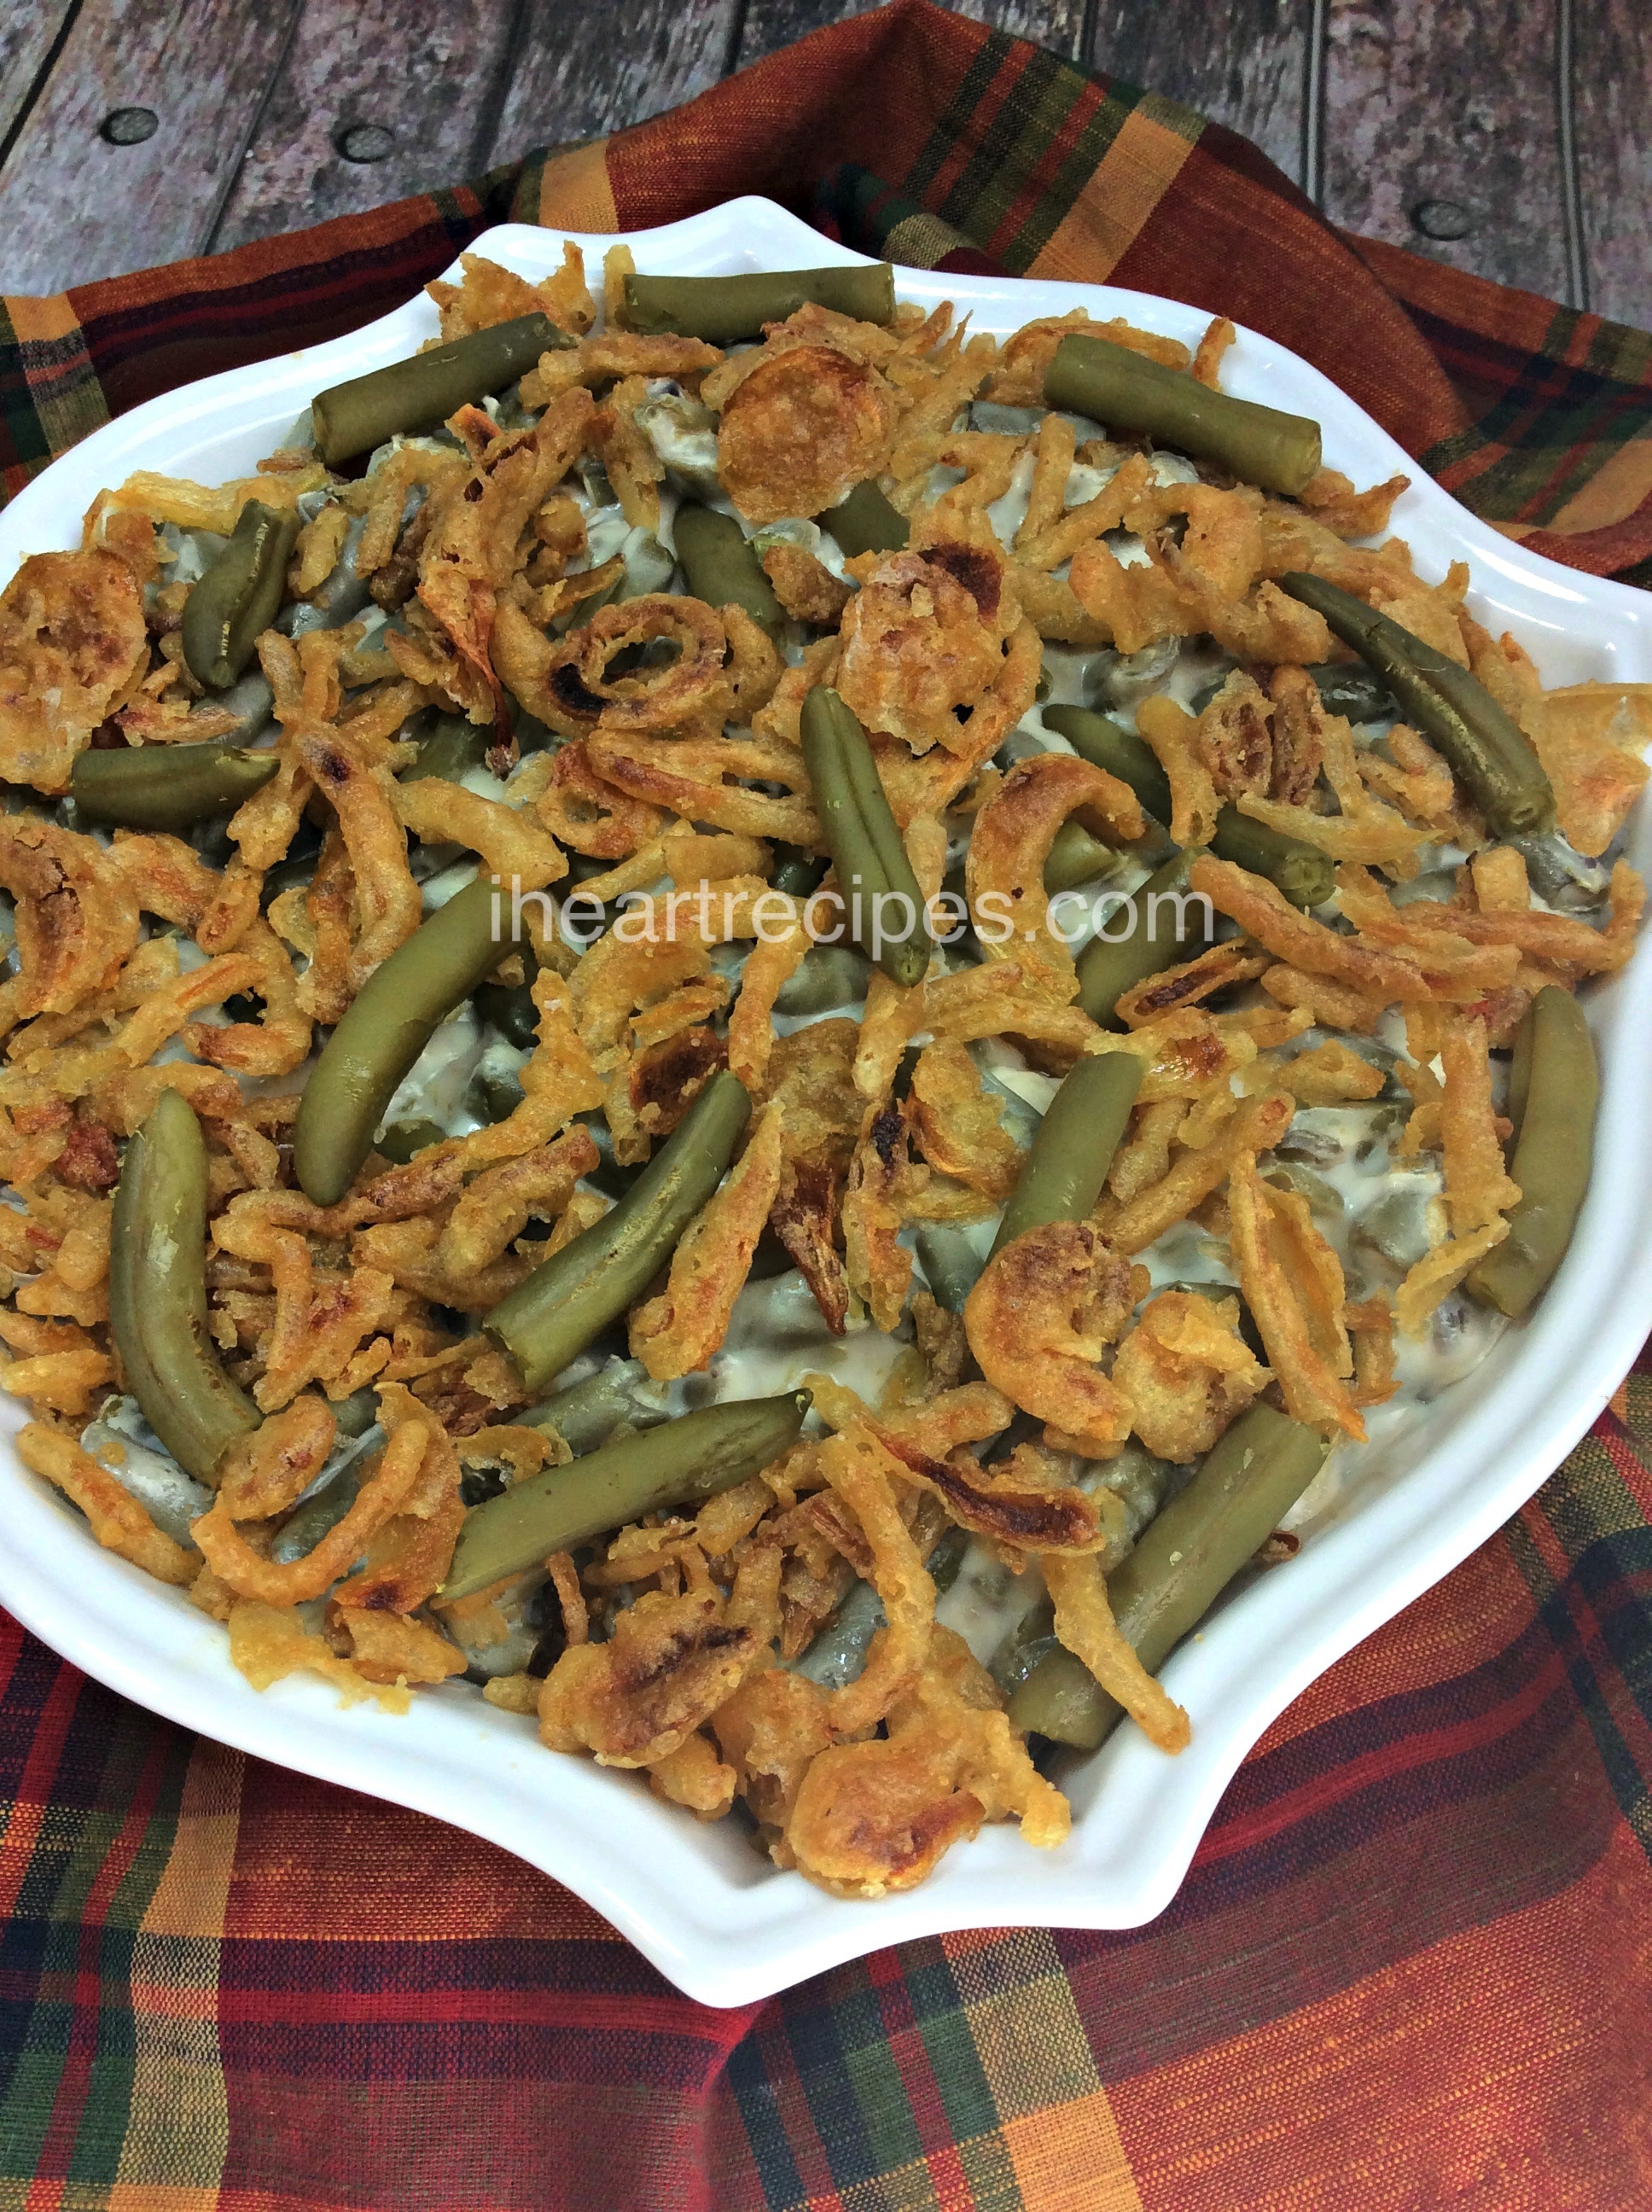 Crispy french fried onions top this creamy green bean casserole with fresh green beans